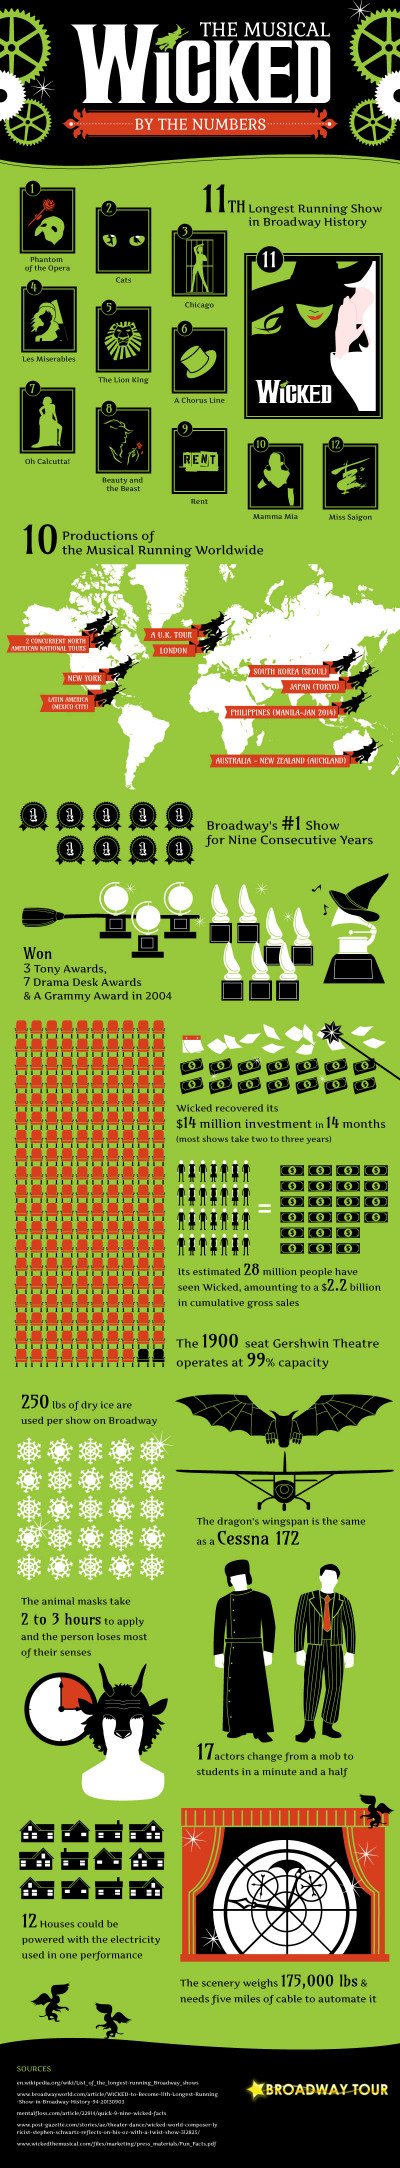 Wicked The Musical: By the Numbers